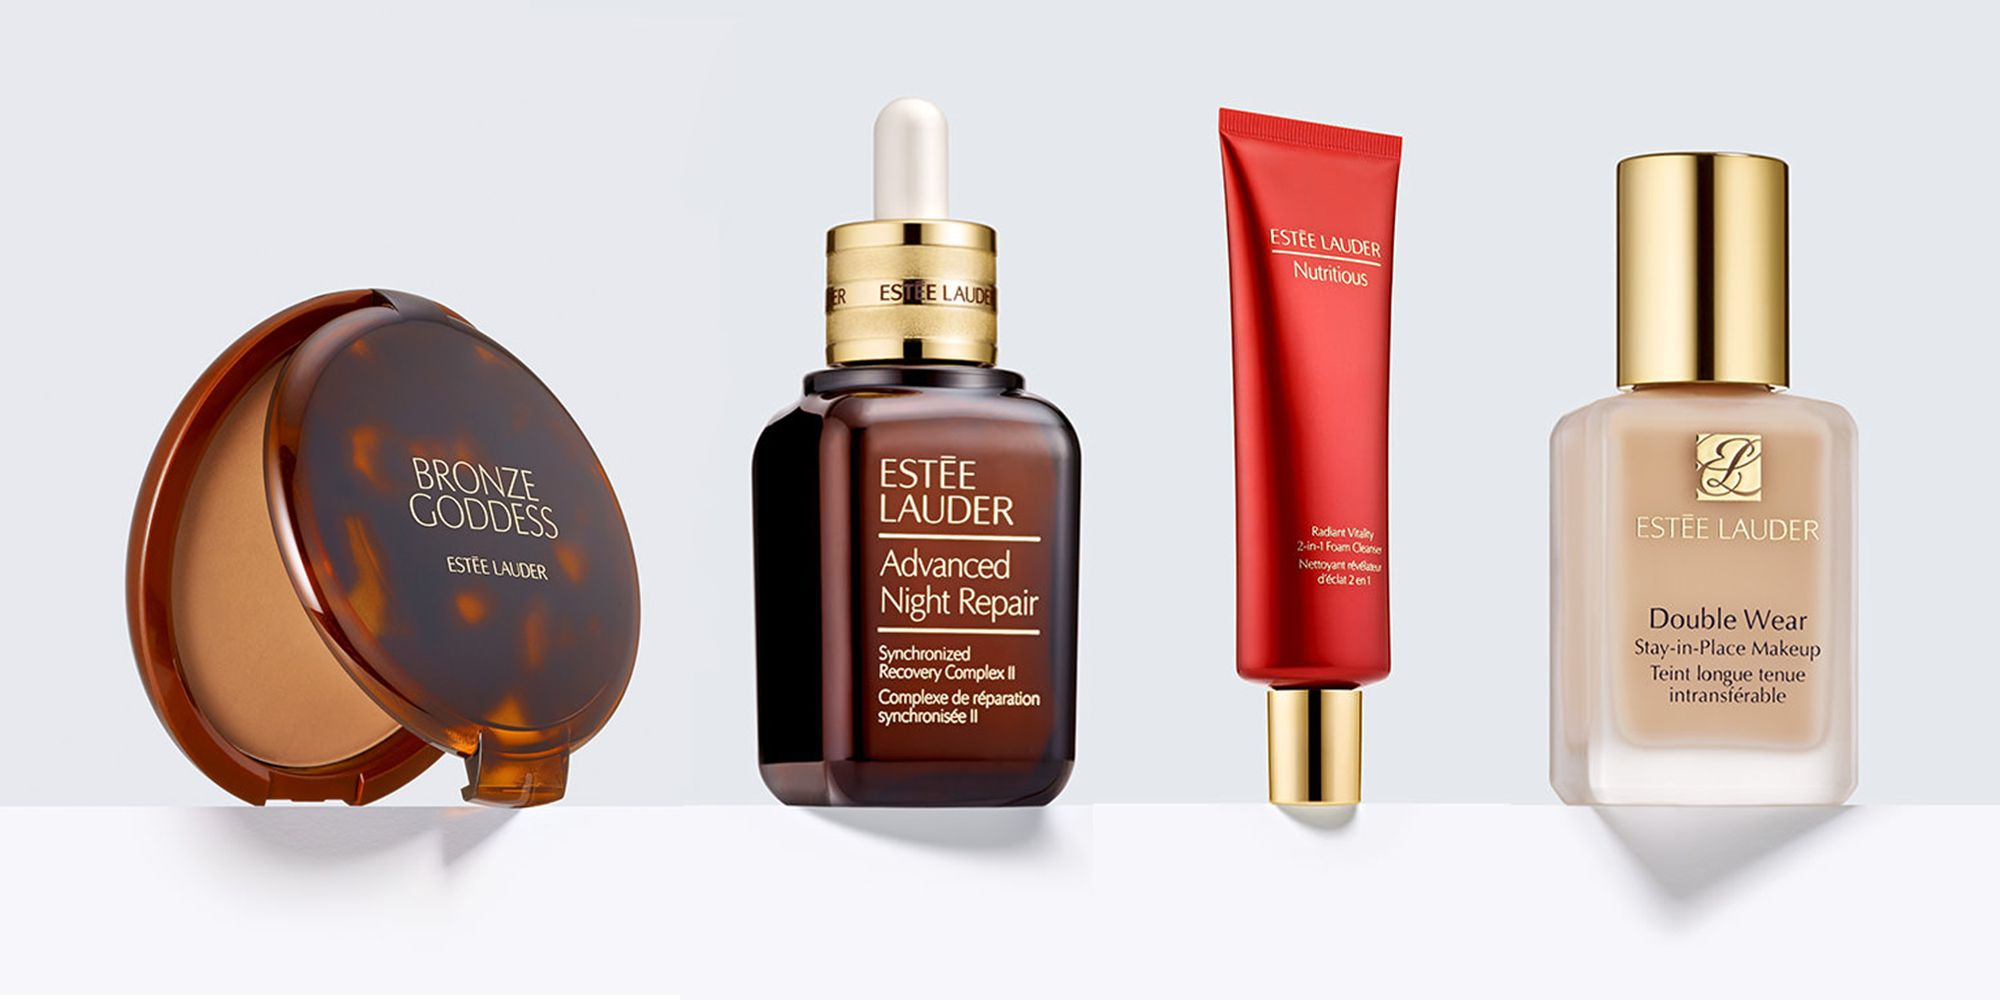 10 Best Selling Este Lauder Makeup And Skincare Products In 2018 Estee Perfectionist Wrinkle Lifting